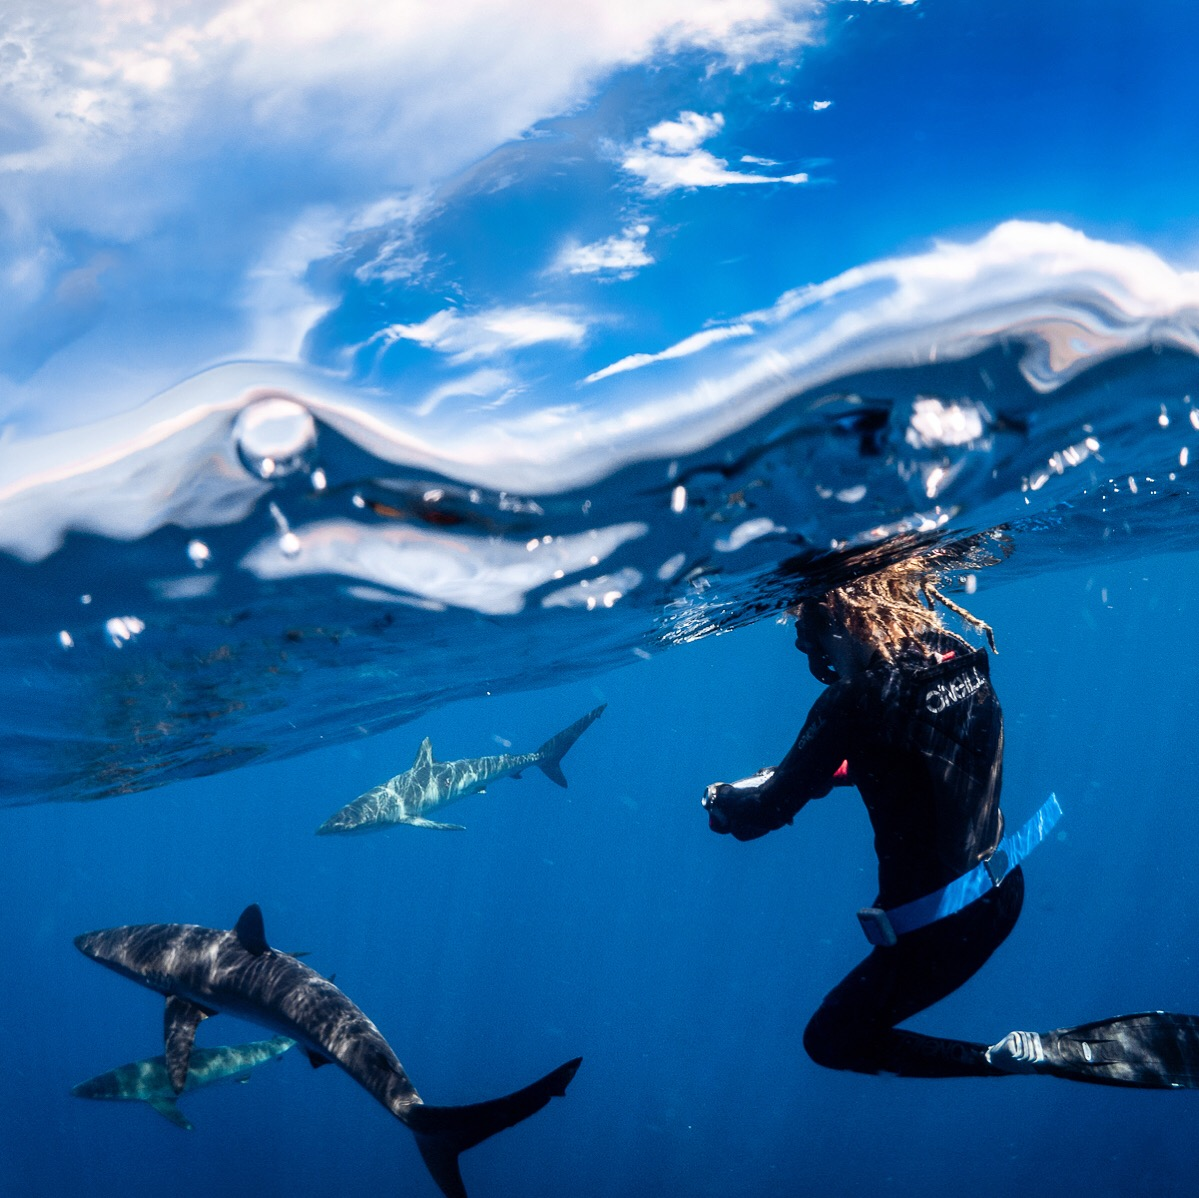 Silky Shark migration & aggregation tours in Los Cabos, Mexico